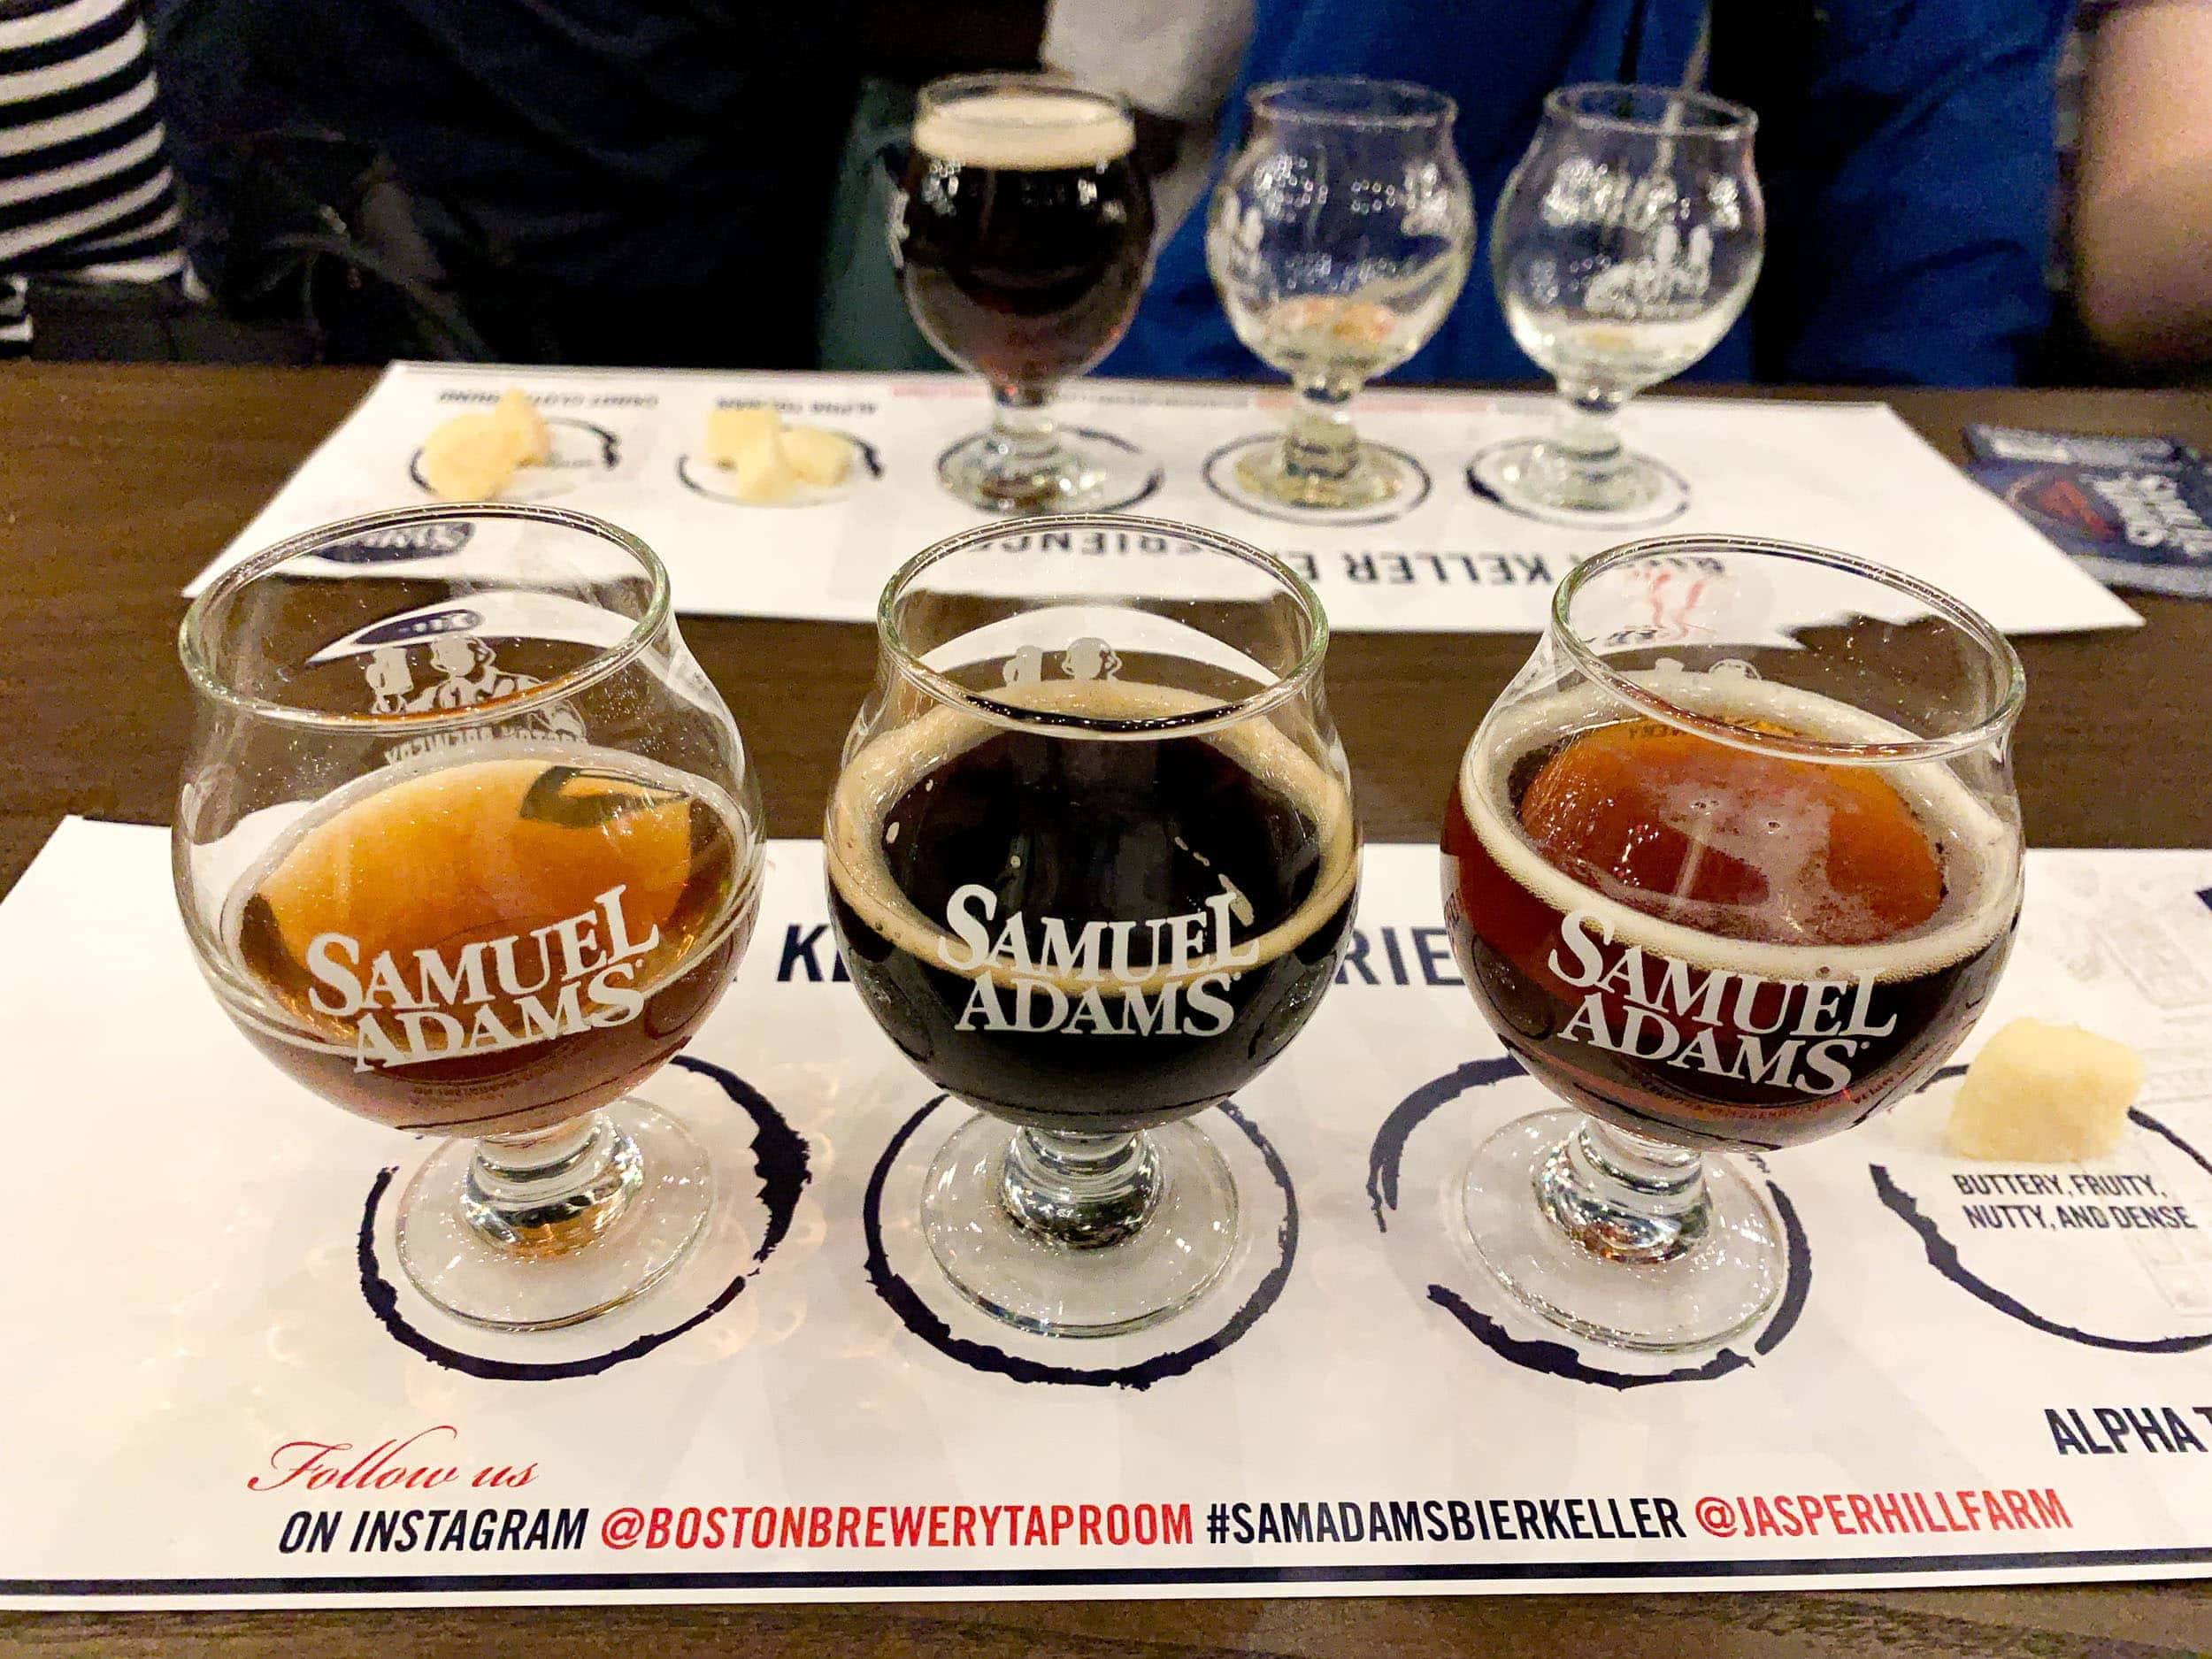 Samuel Adams beer tasting